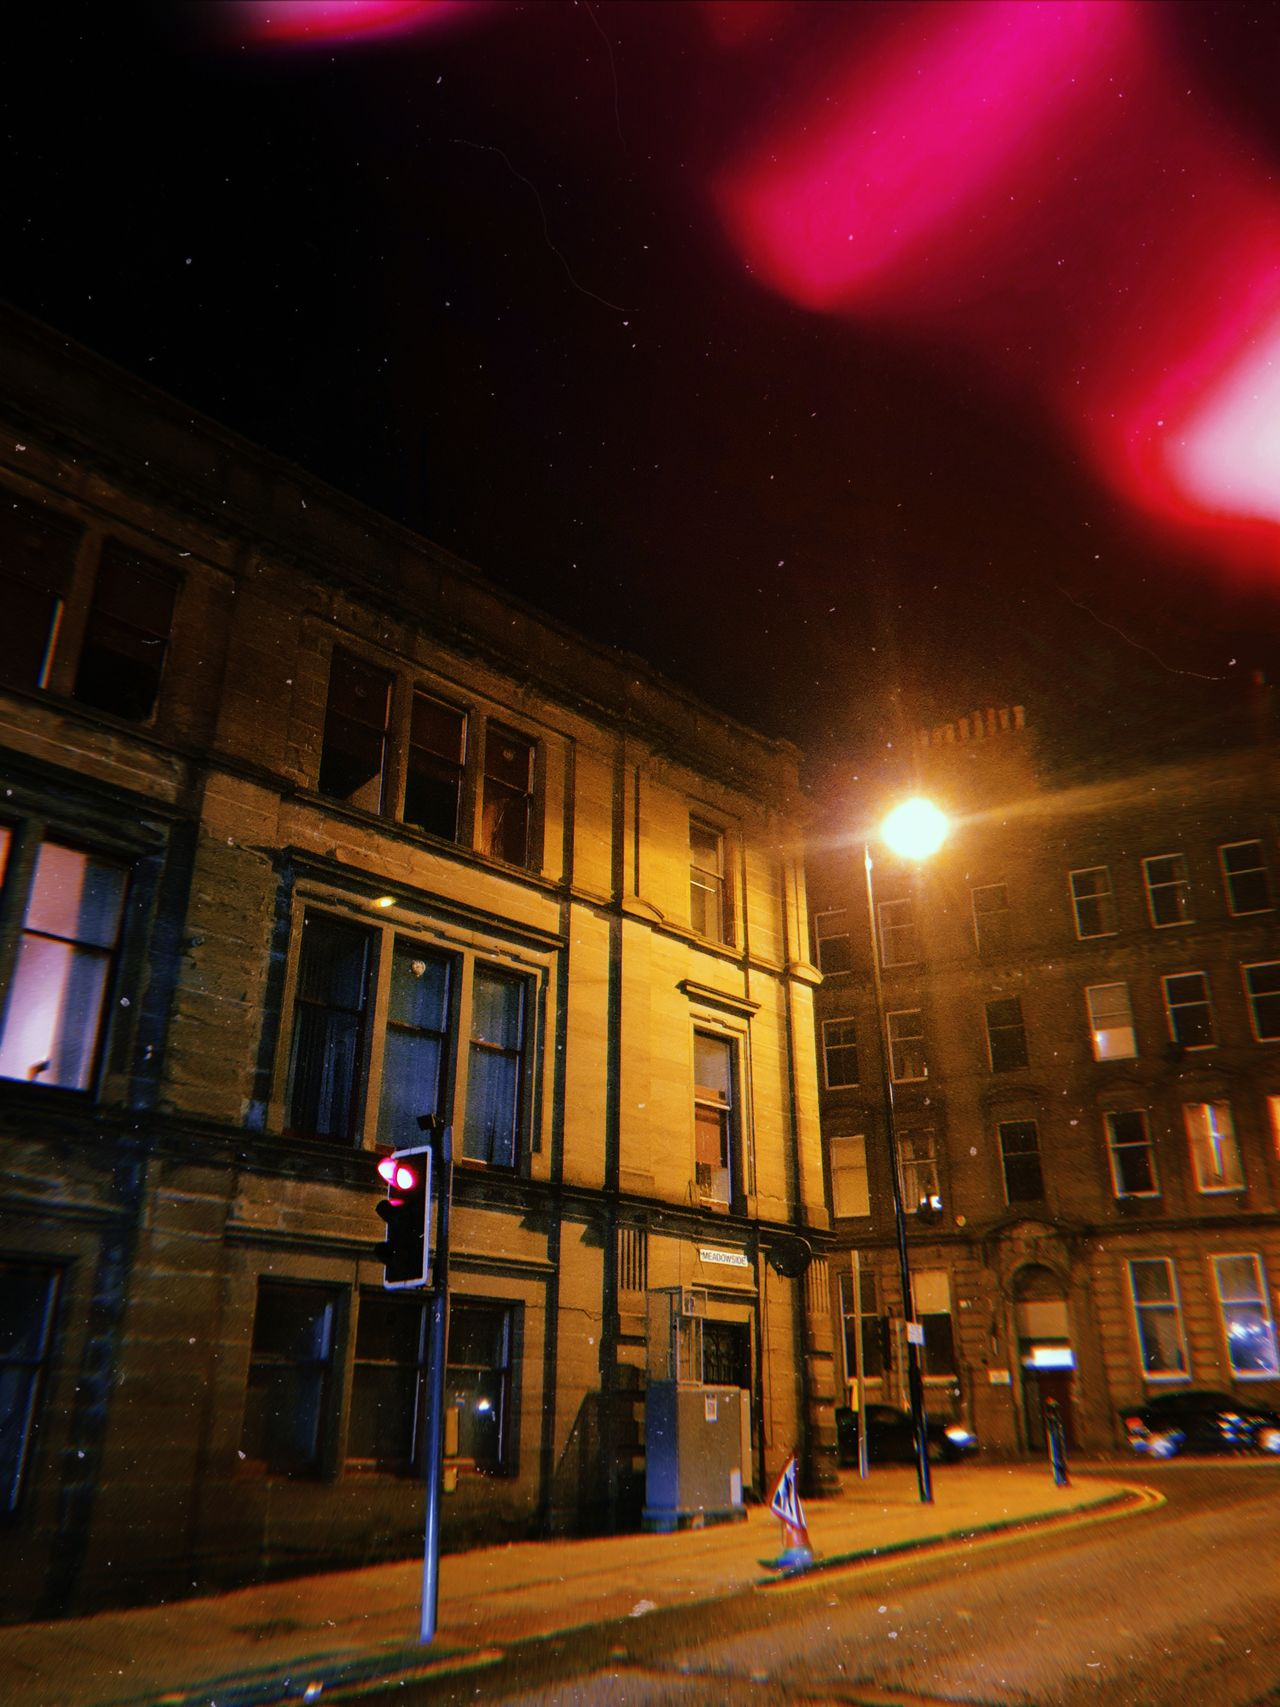 A dark street in Dundee at night looking up at a building.